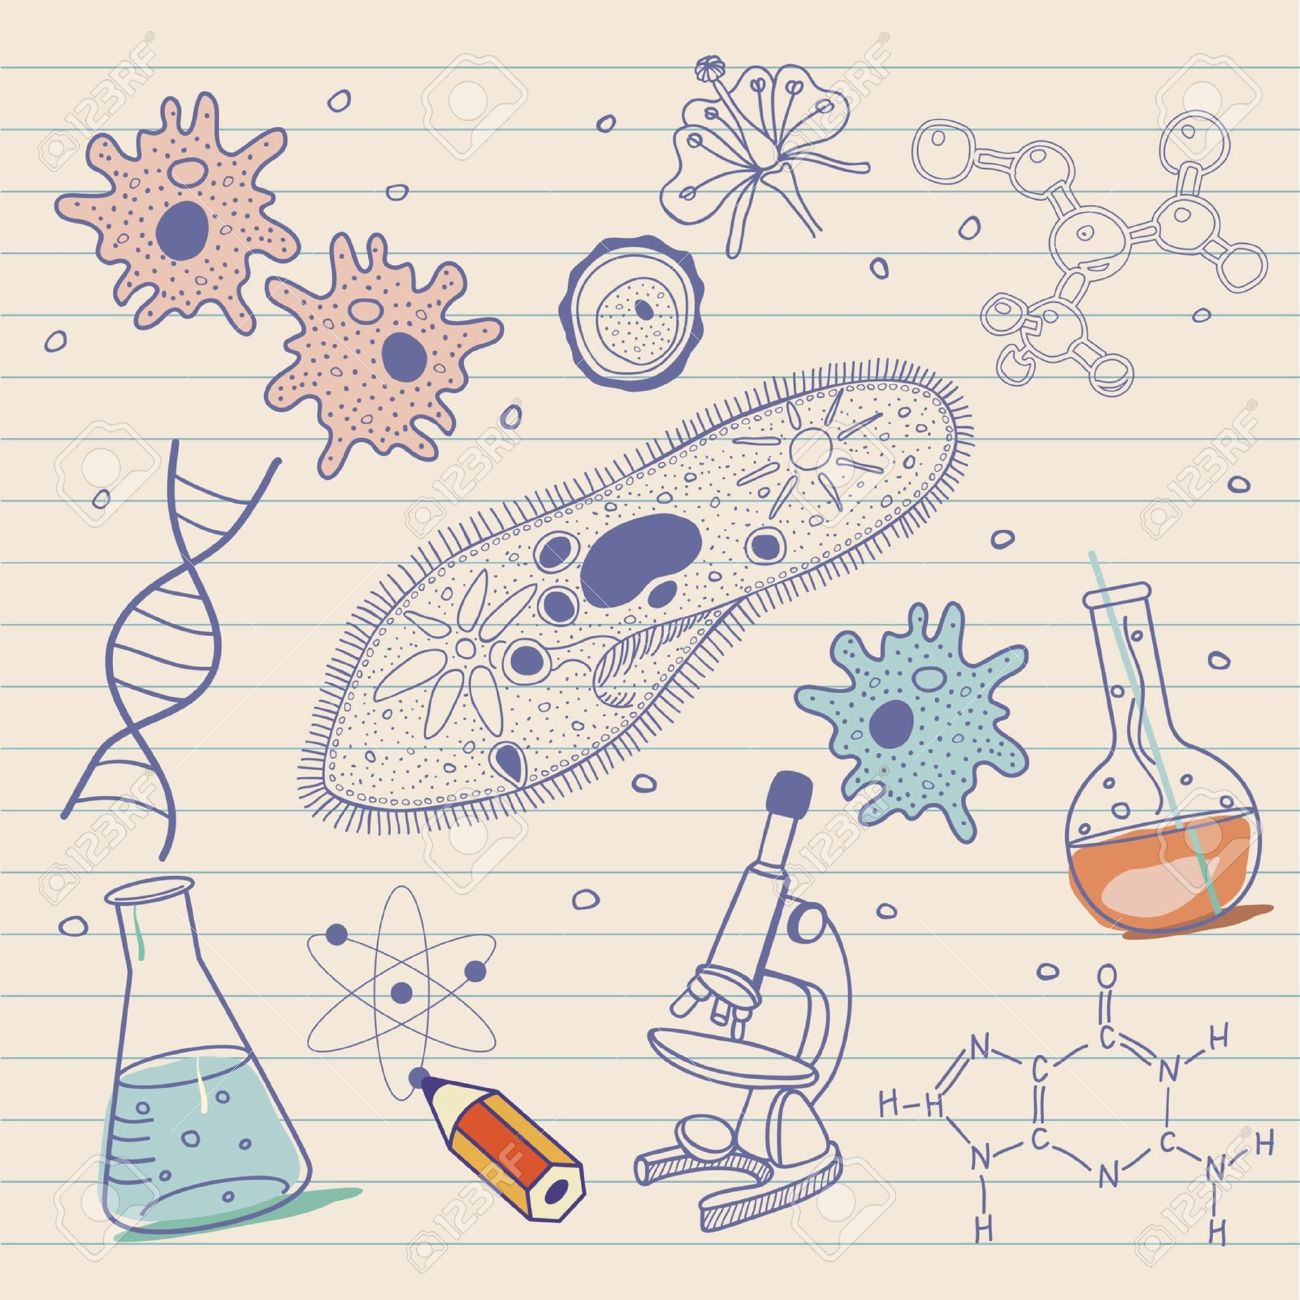 Biology sketches background in vintage style Stock Vector - 17375599